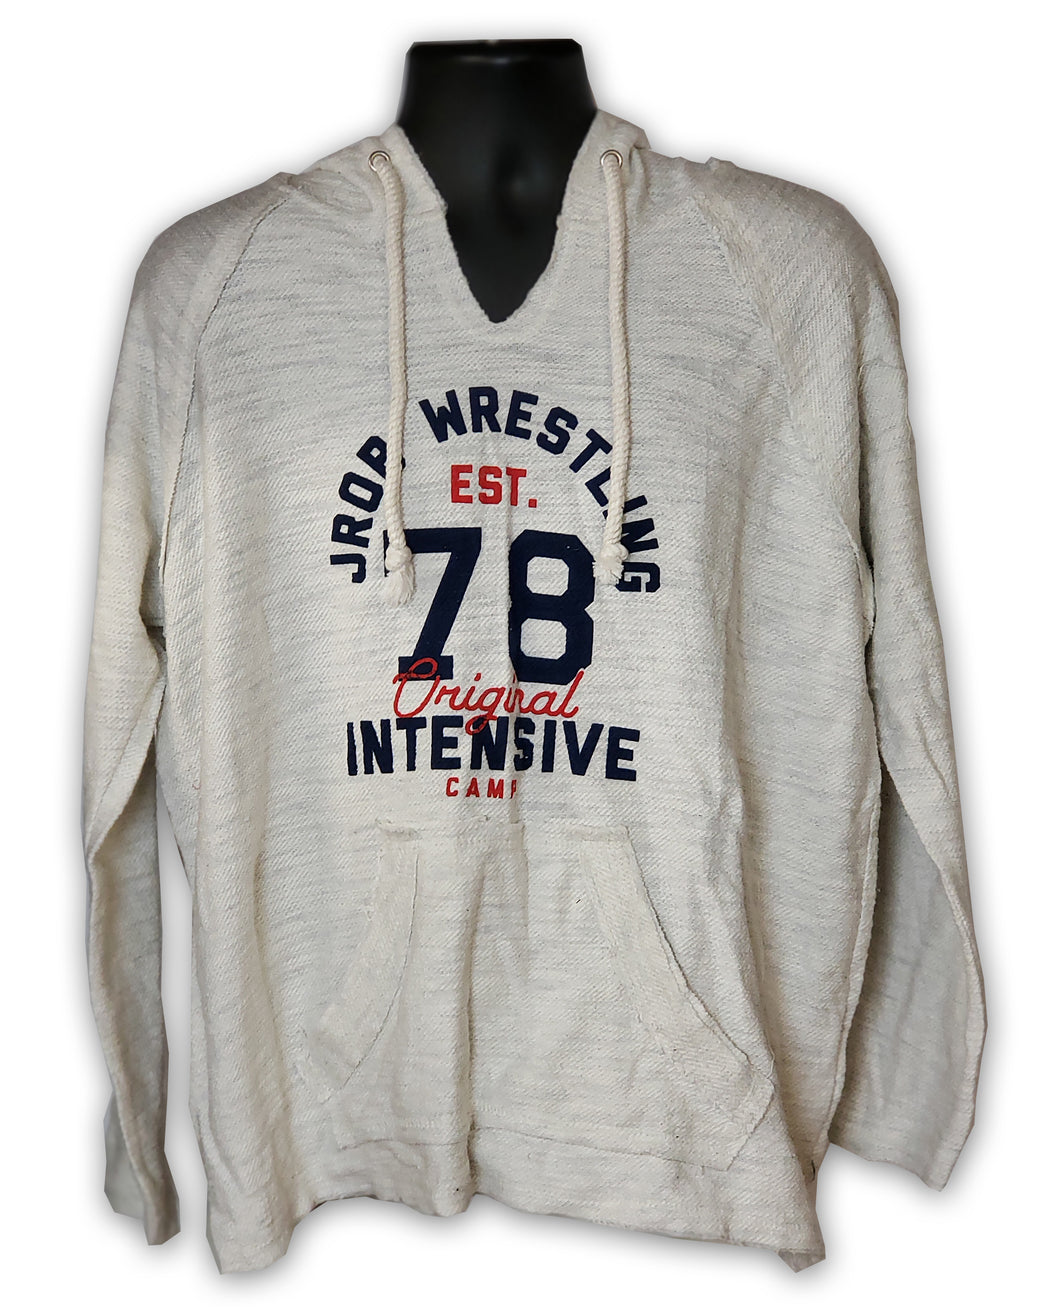 Original Intensive Camp Terry Sweatshirt